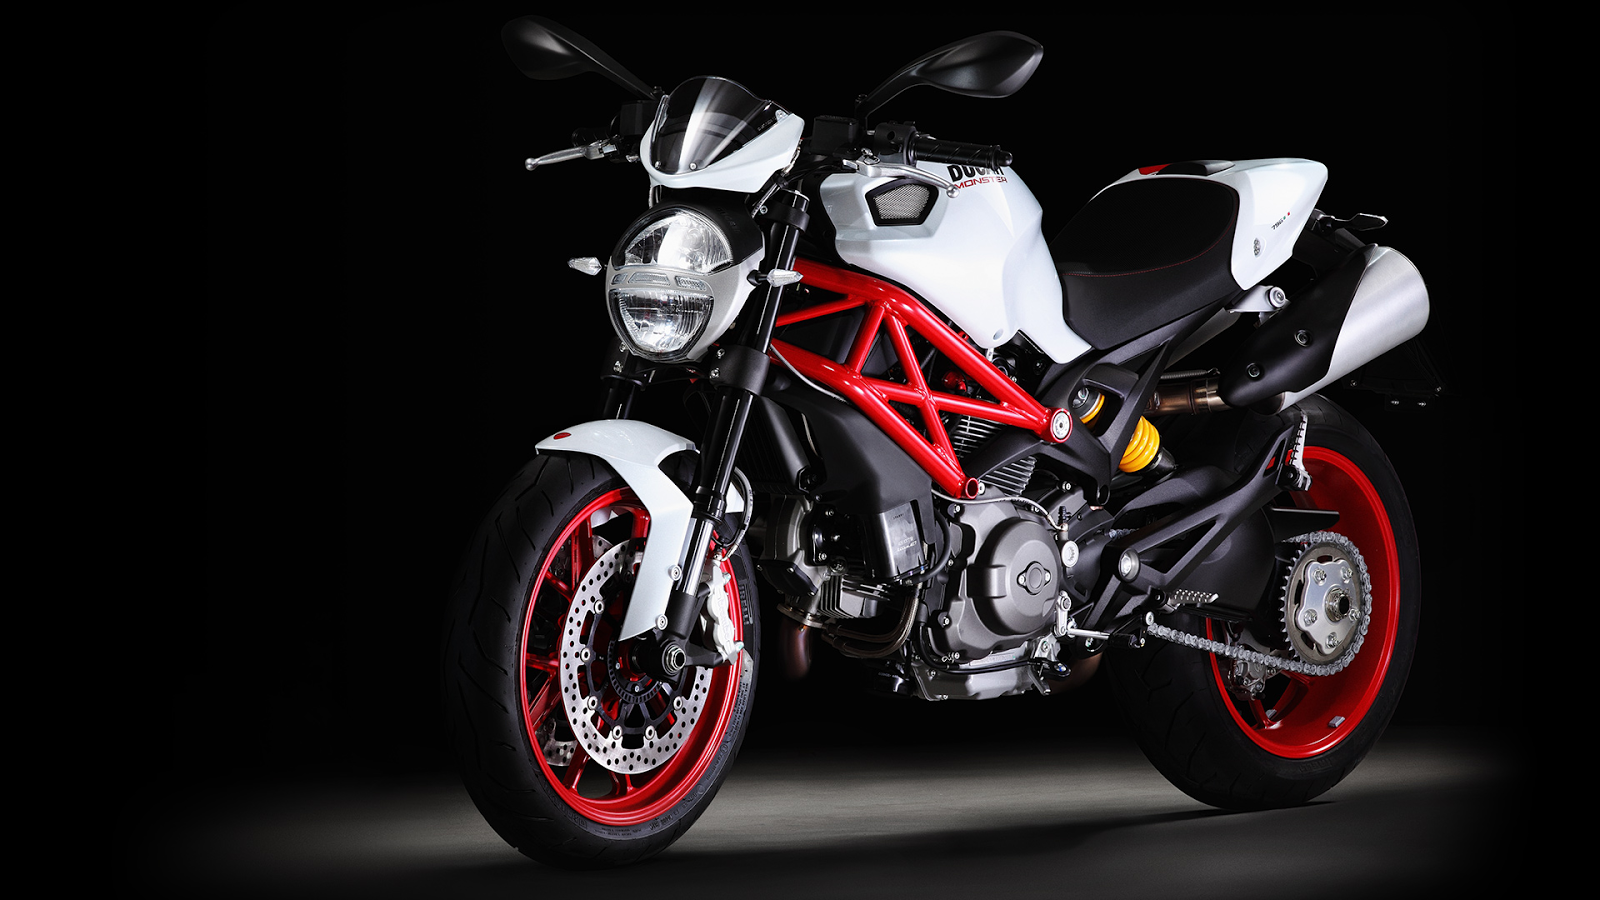 Ducati Monster 796 Corse Stripe 2015 images #146215